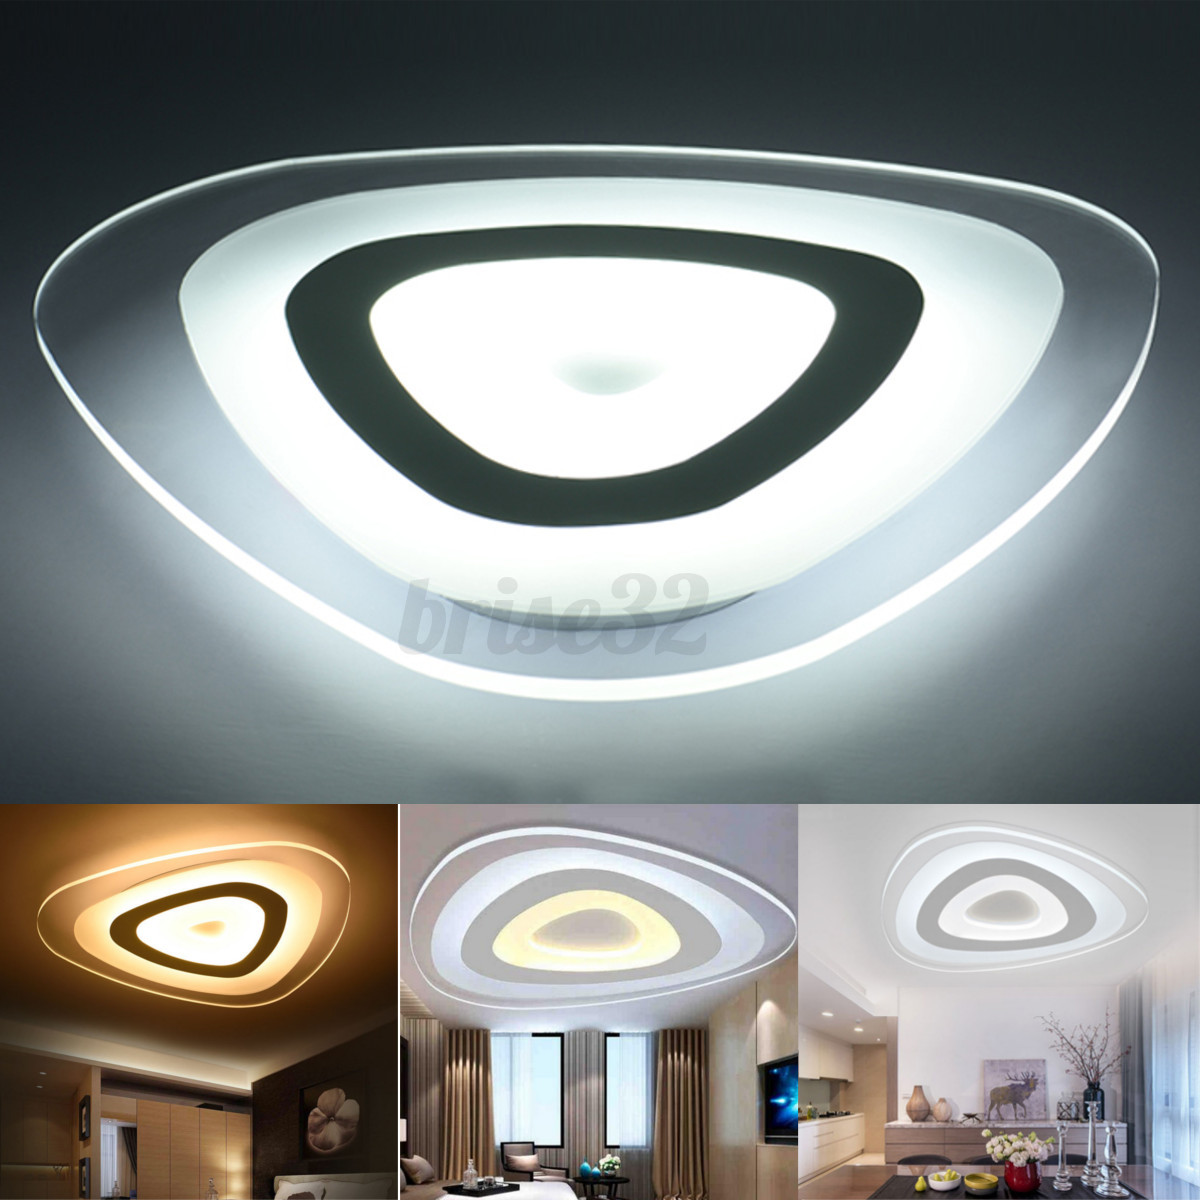 48w Flush Mount Led Pendant Light Ceiling Lamp Bedroom: 12/35/48W Modern Ultrathin LED Lamp Flush Mount Ceiling